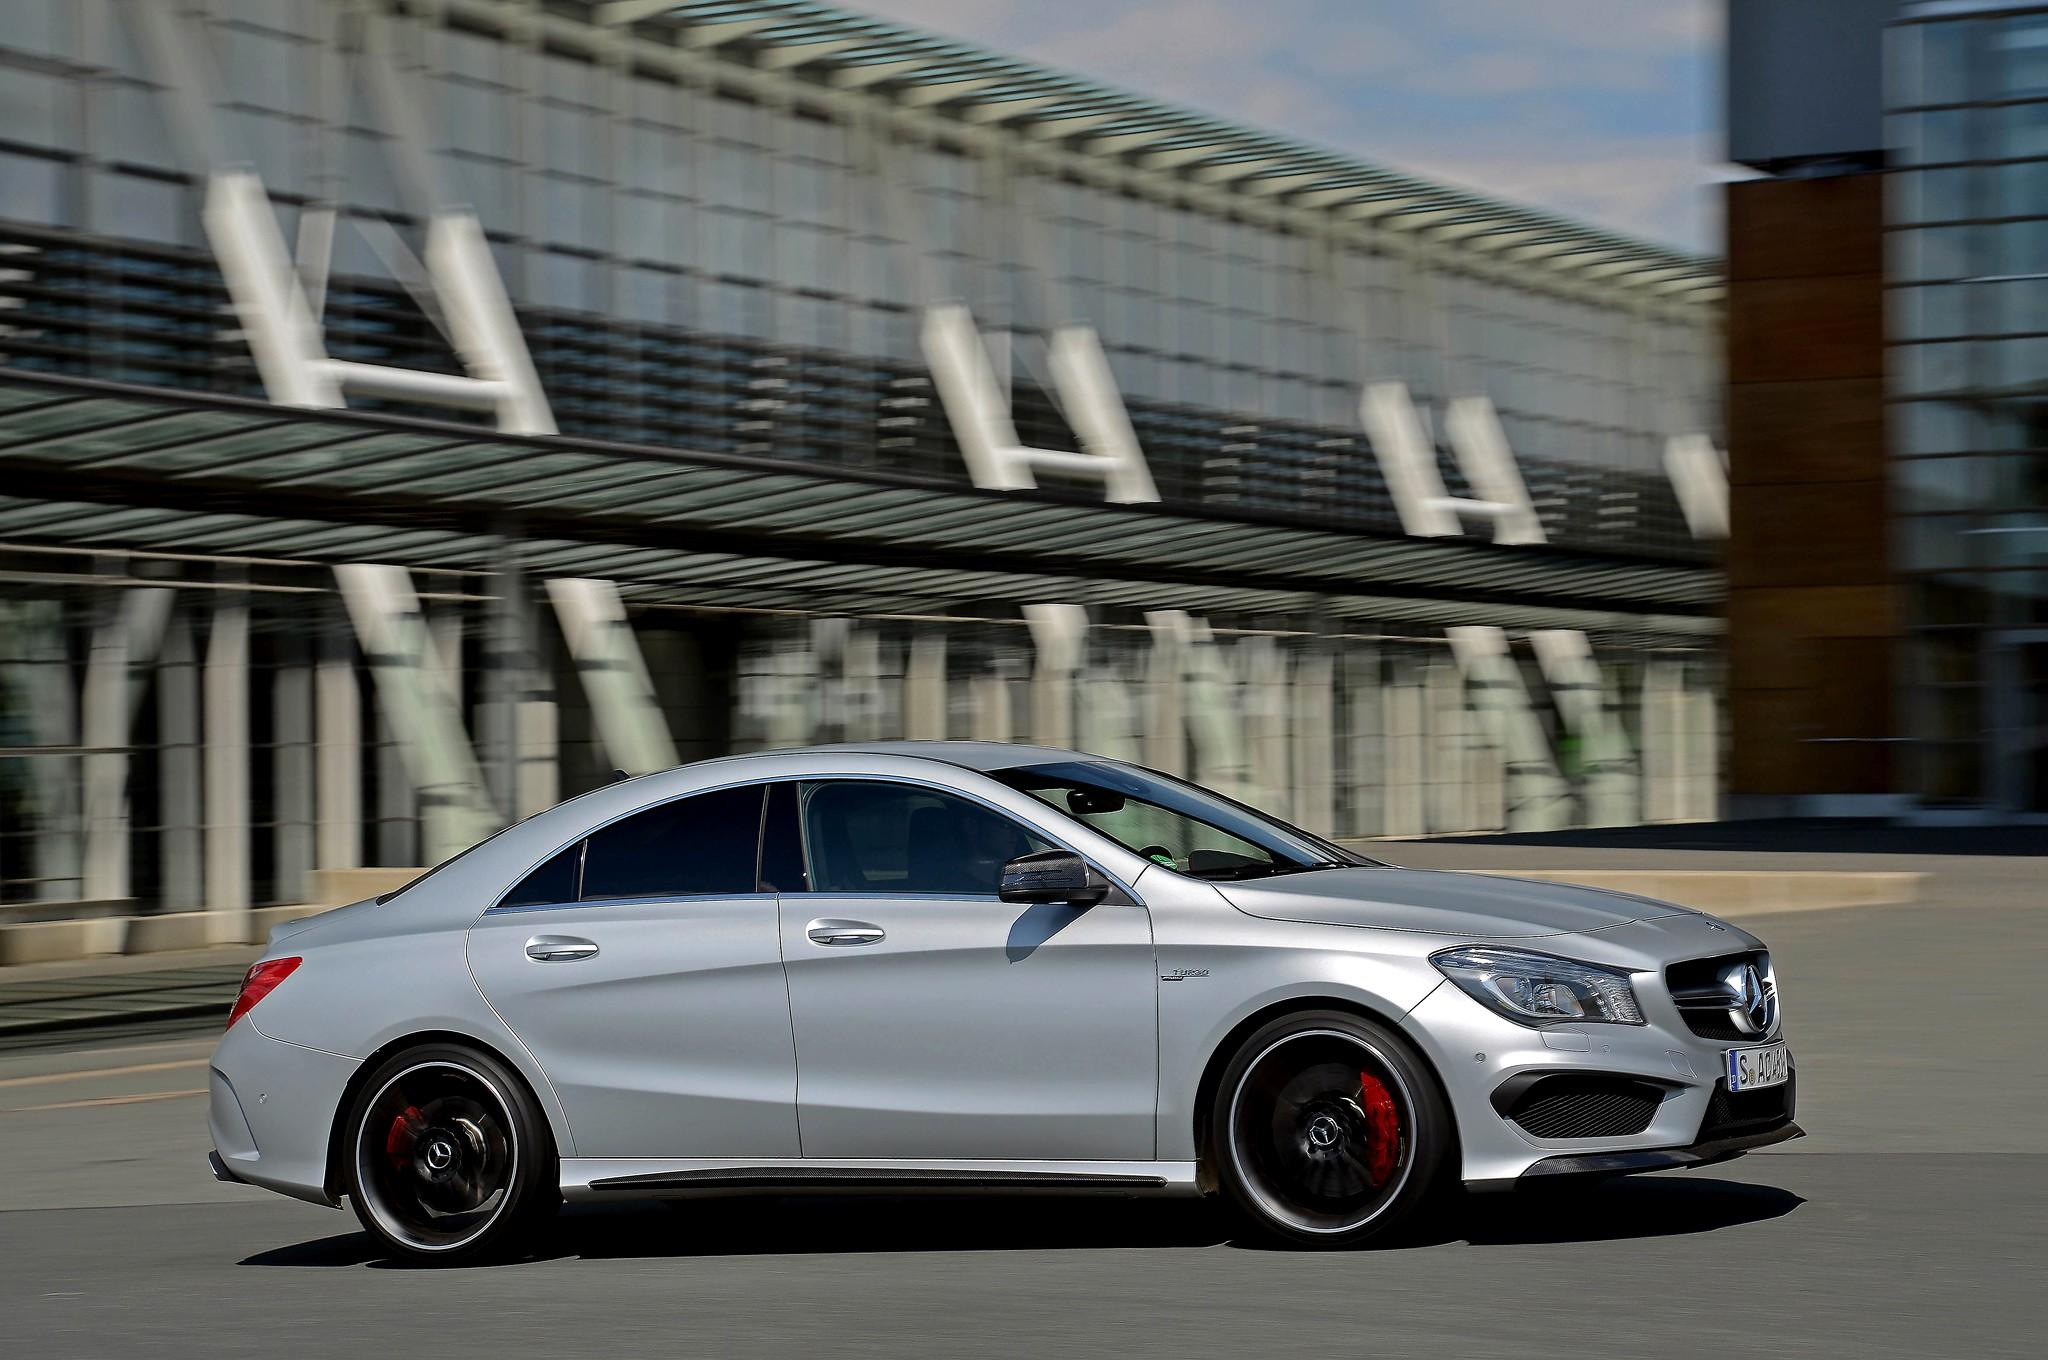 mercedes benz cla 45 amg wallpaper hd download. Black Bedroom Furniture Sets. Home Design Ideas